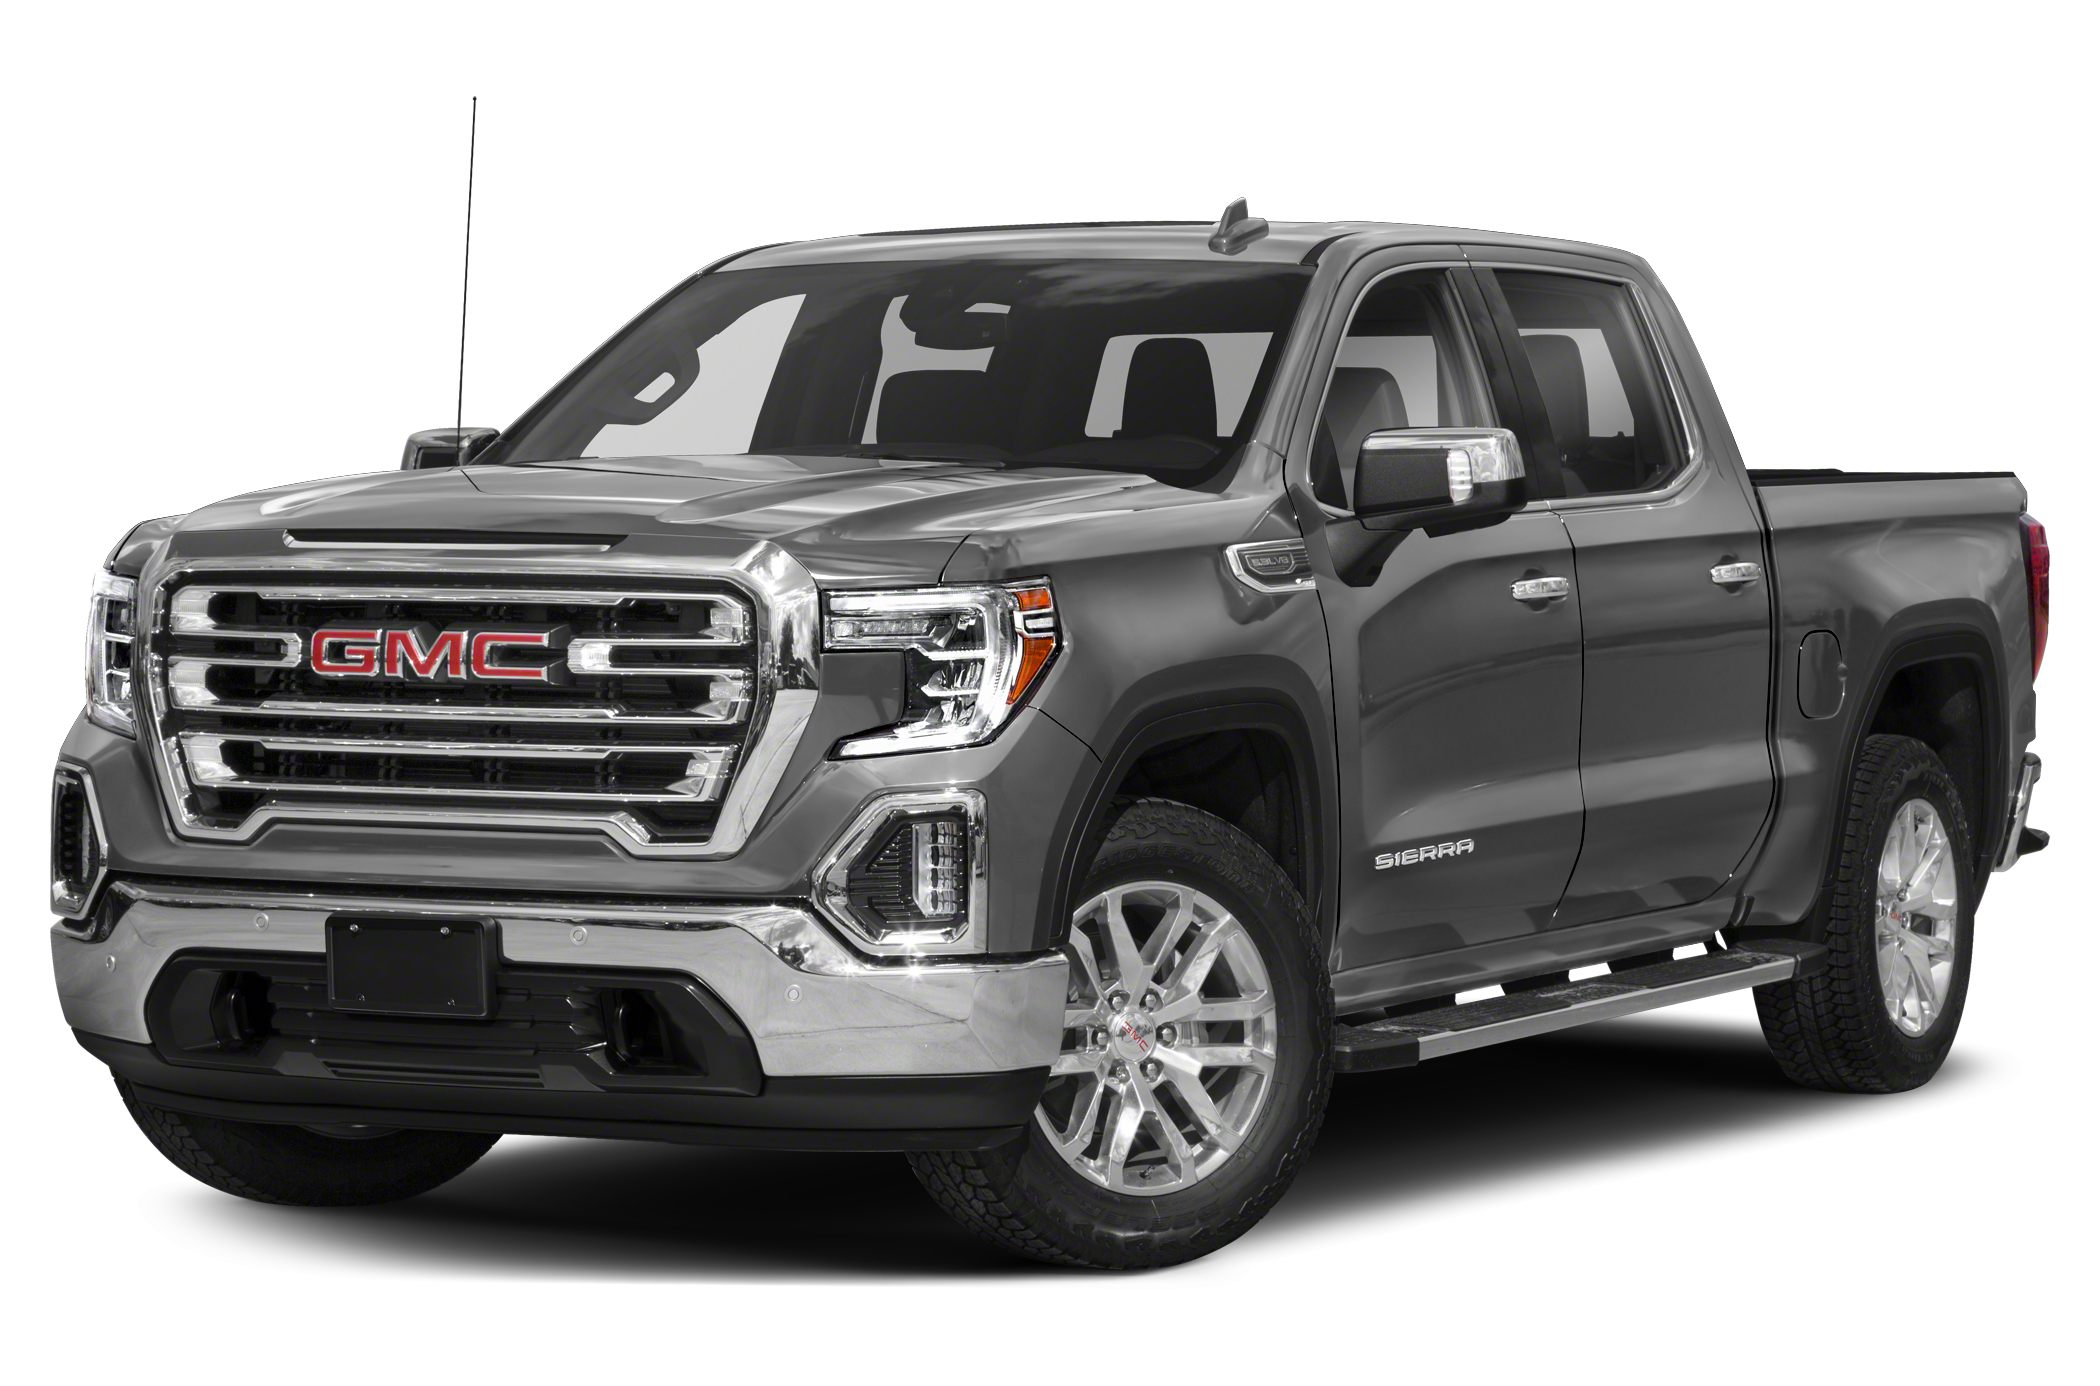 2019 Gmc Sierra 1500 Base 4x4 Crew Cab 6 6 Ft Box 157 In Wb Pricing And Options